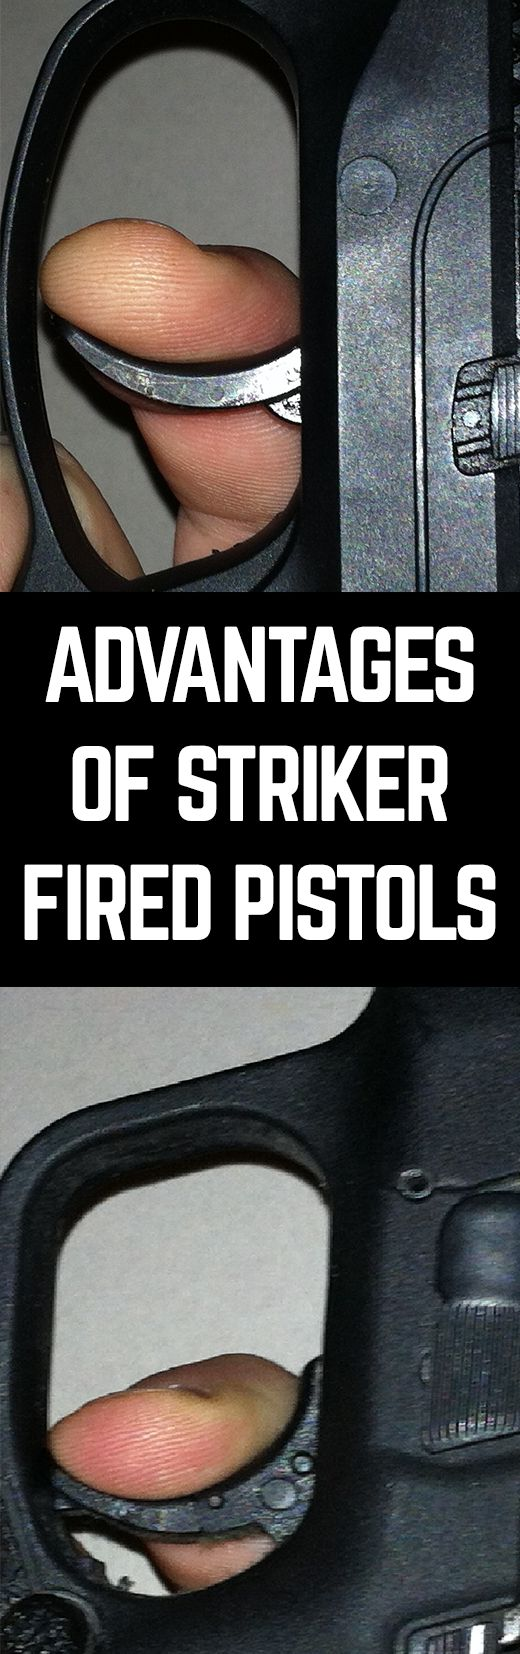 Many instructors recommend double-action-only revolvers, double-action-only semi-automatics, and striker-fired semi-automatics as I do. All these action types have the main characteristics desired in a defensive pistol. They can safely be carried without the need for a manually operated mechanical safety. This means that in the middle of a violent attack, you do not need to use any fine motor skills to manipulate the safety. They are all simple to operate. When you press the trigger, they…